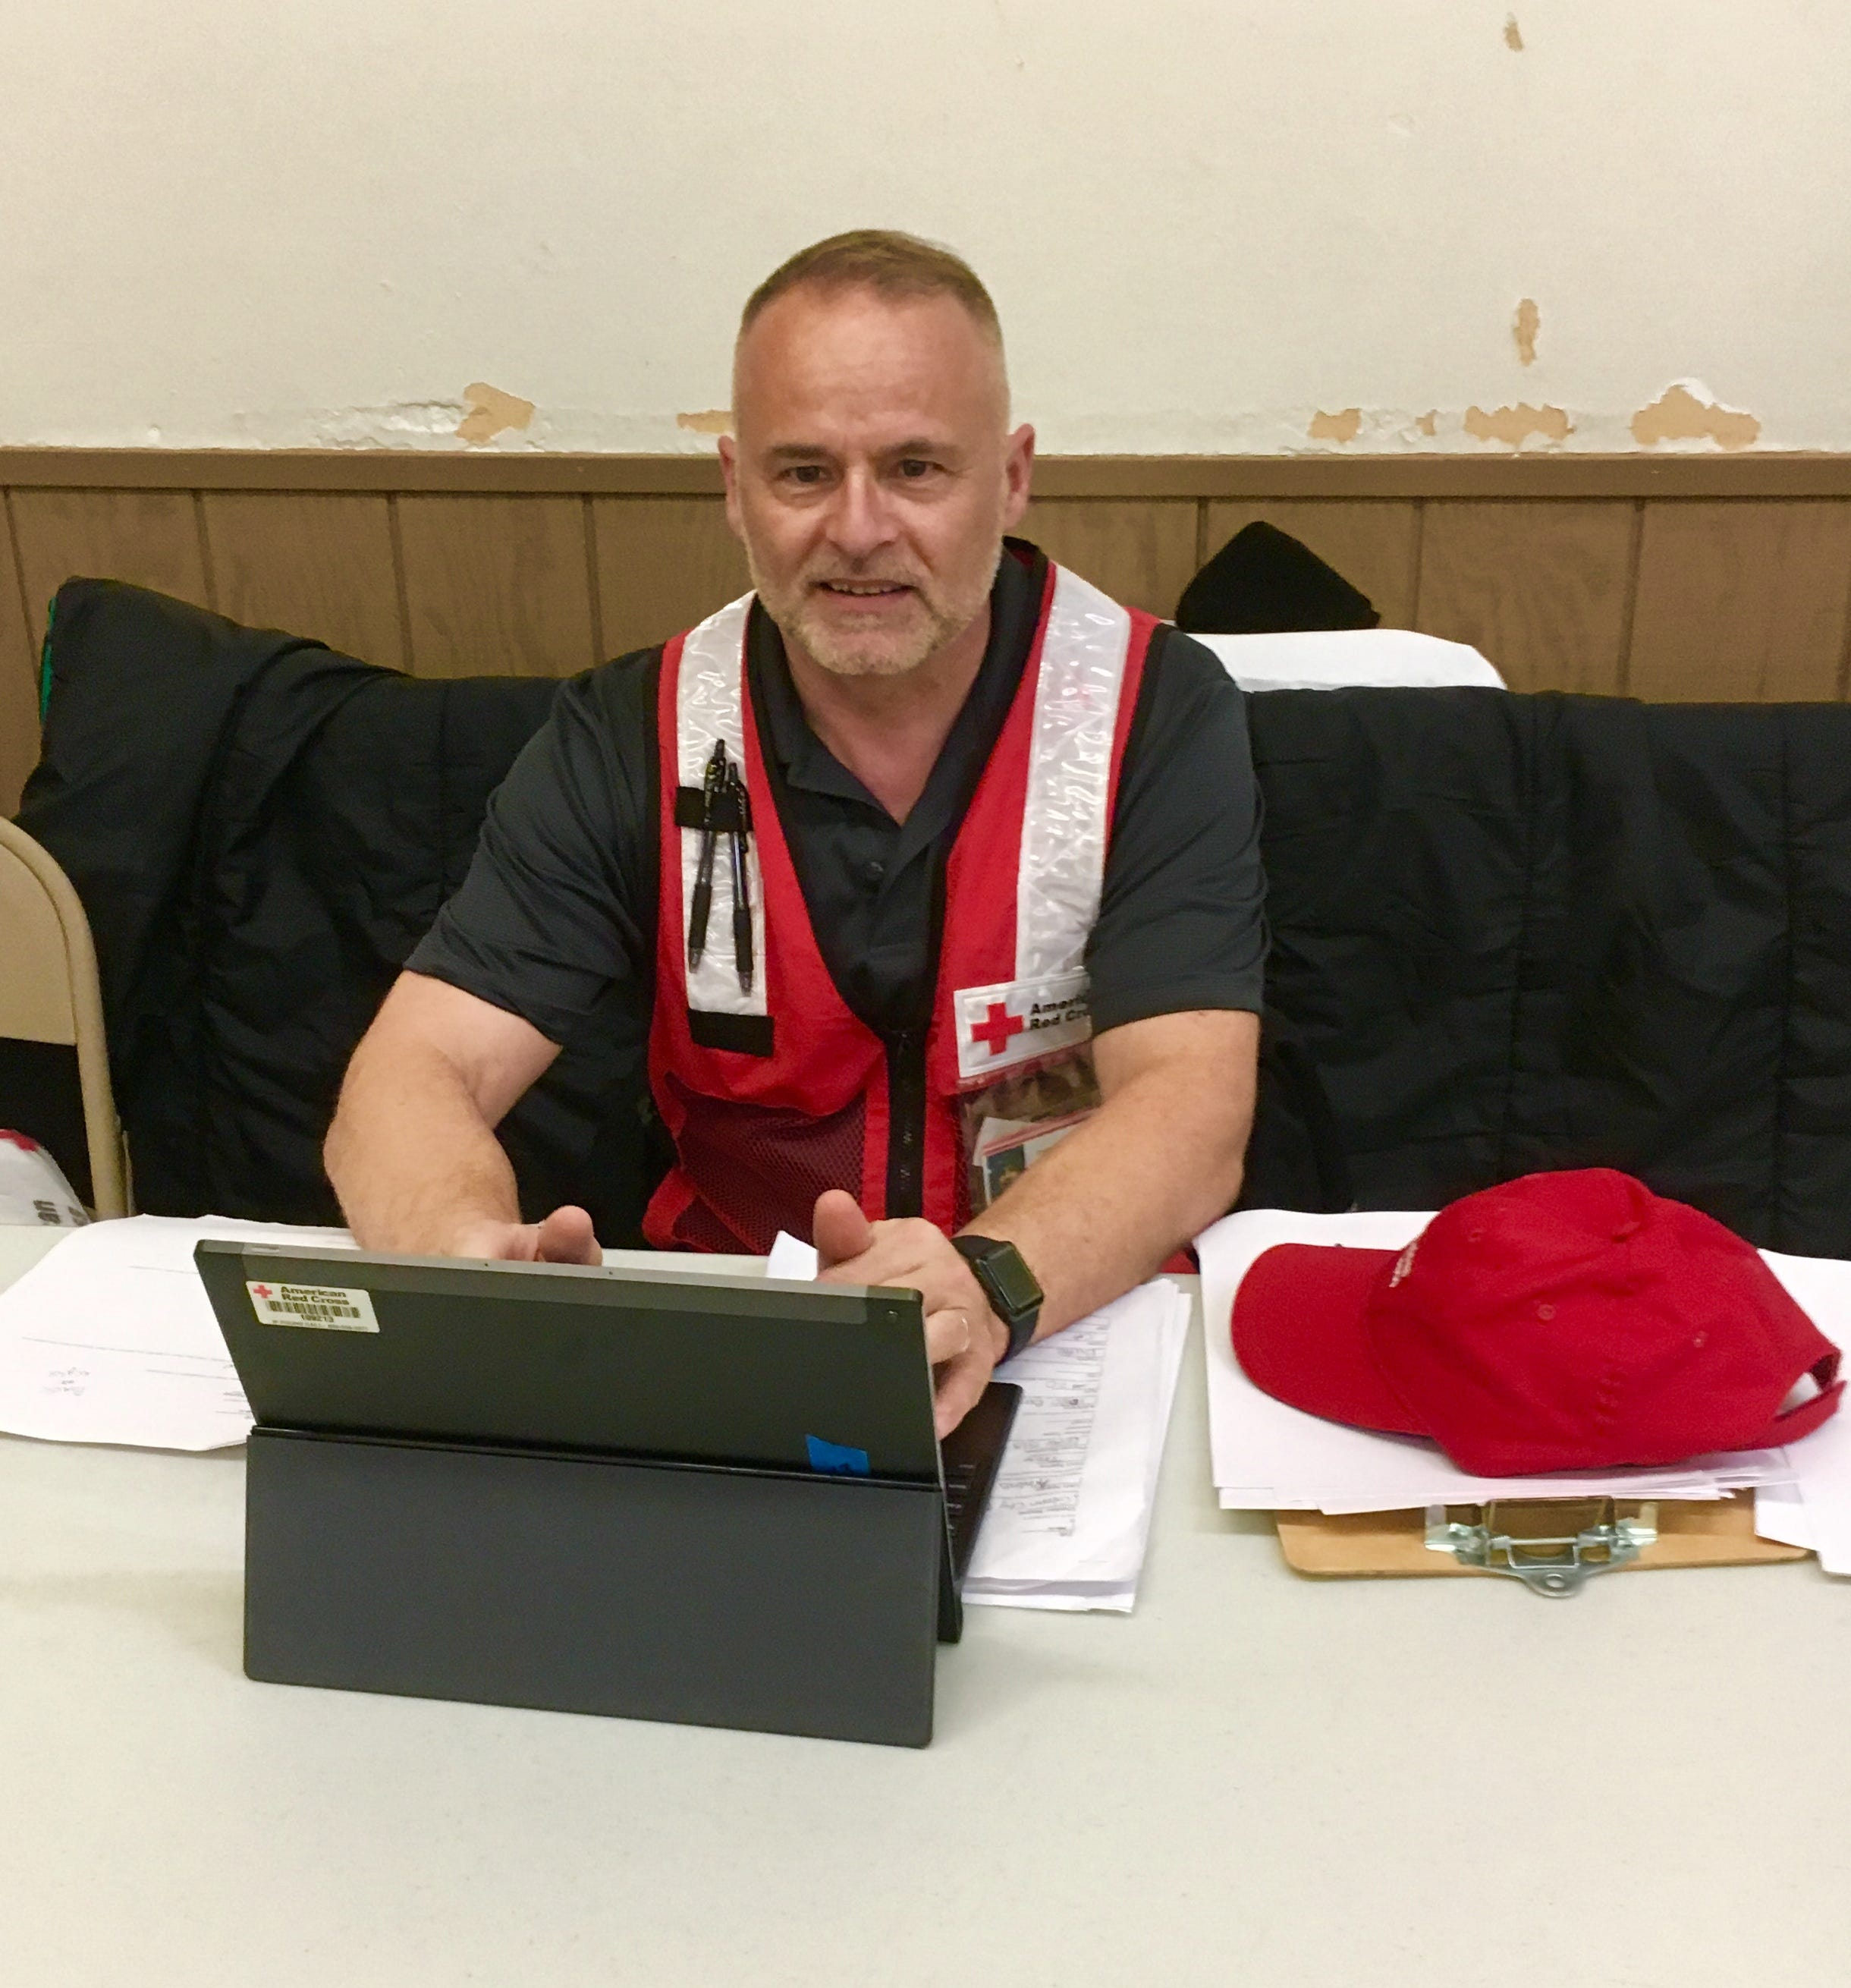 Phil Barletto, the disaster program manager with Clarksville's chapter of the Red Cross, works at a shelter in California set up for people displaced by the Camp Fire.